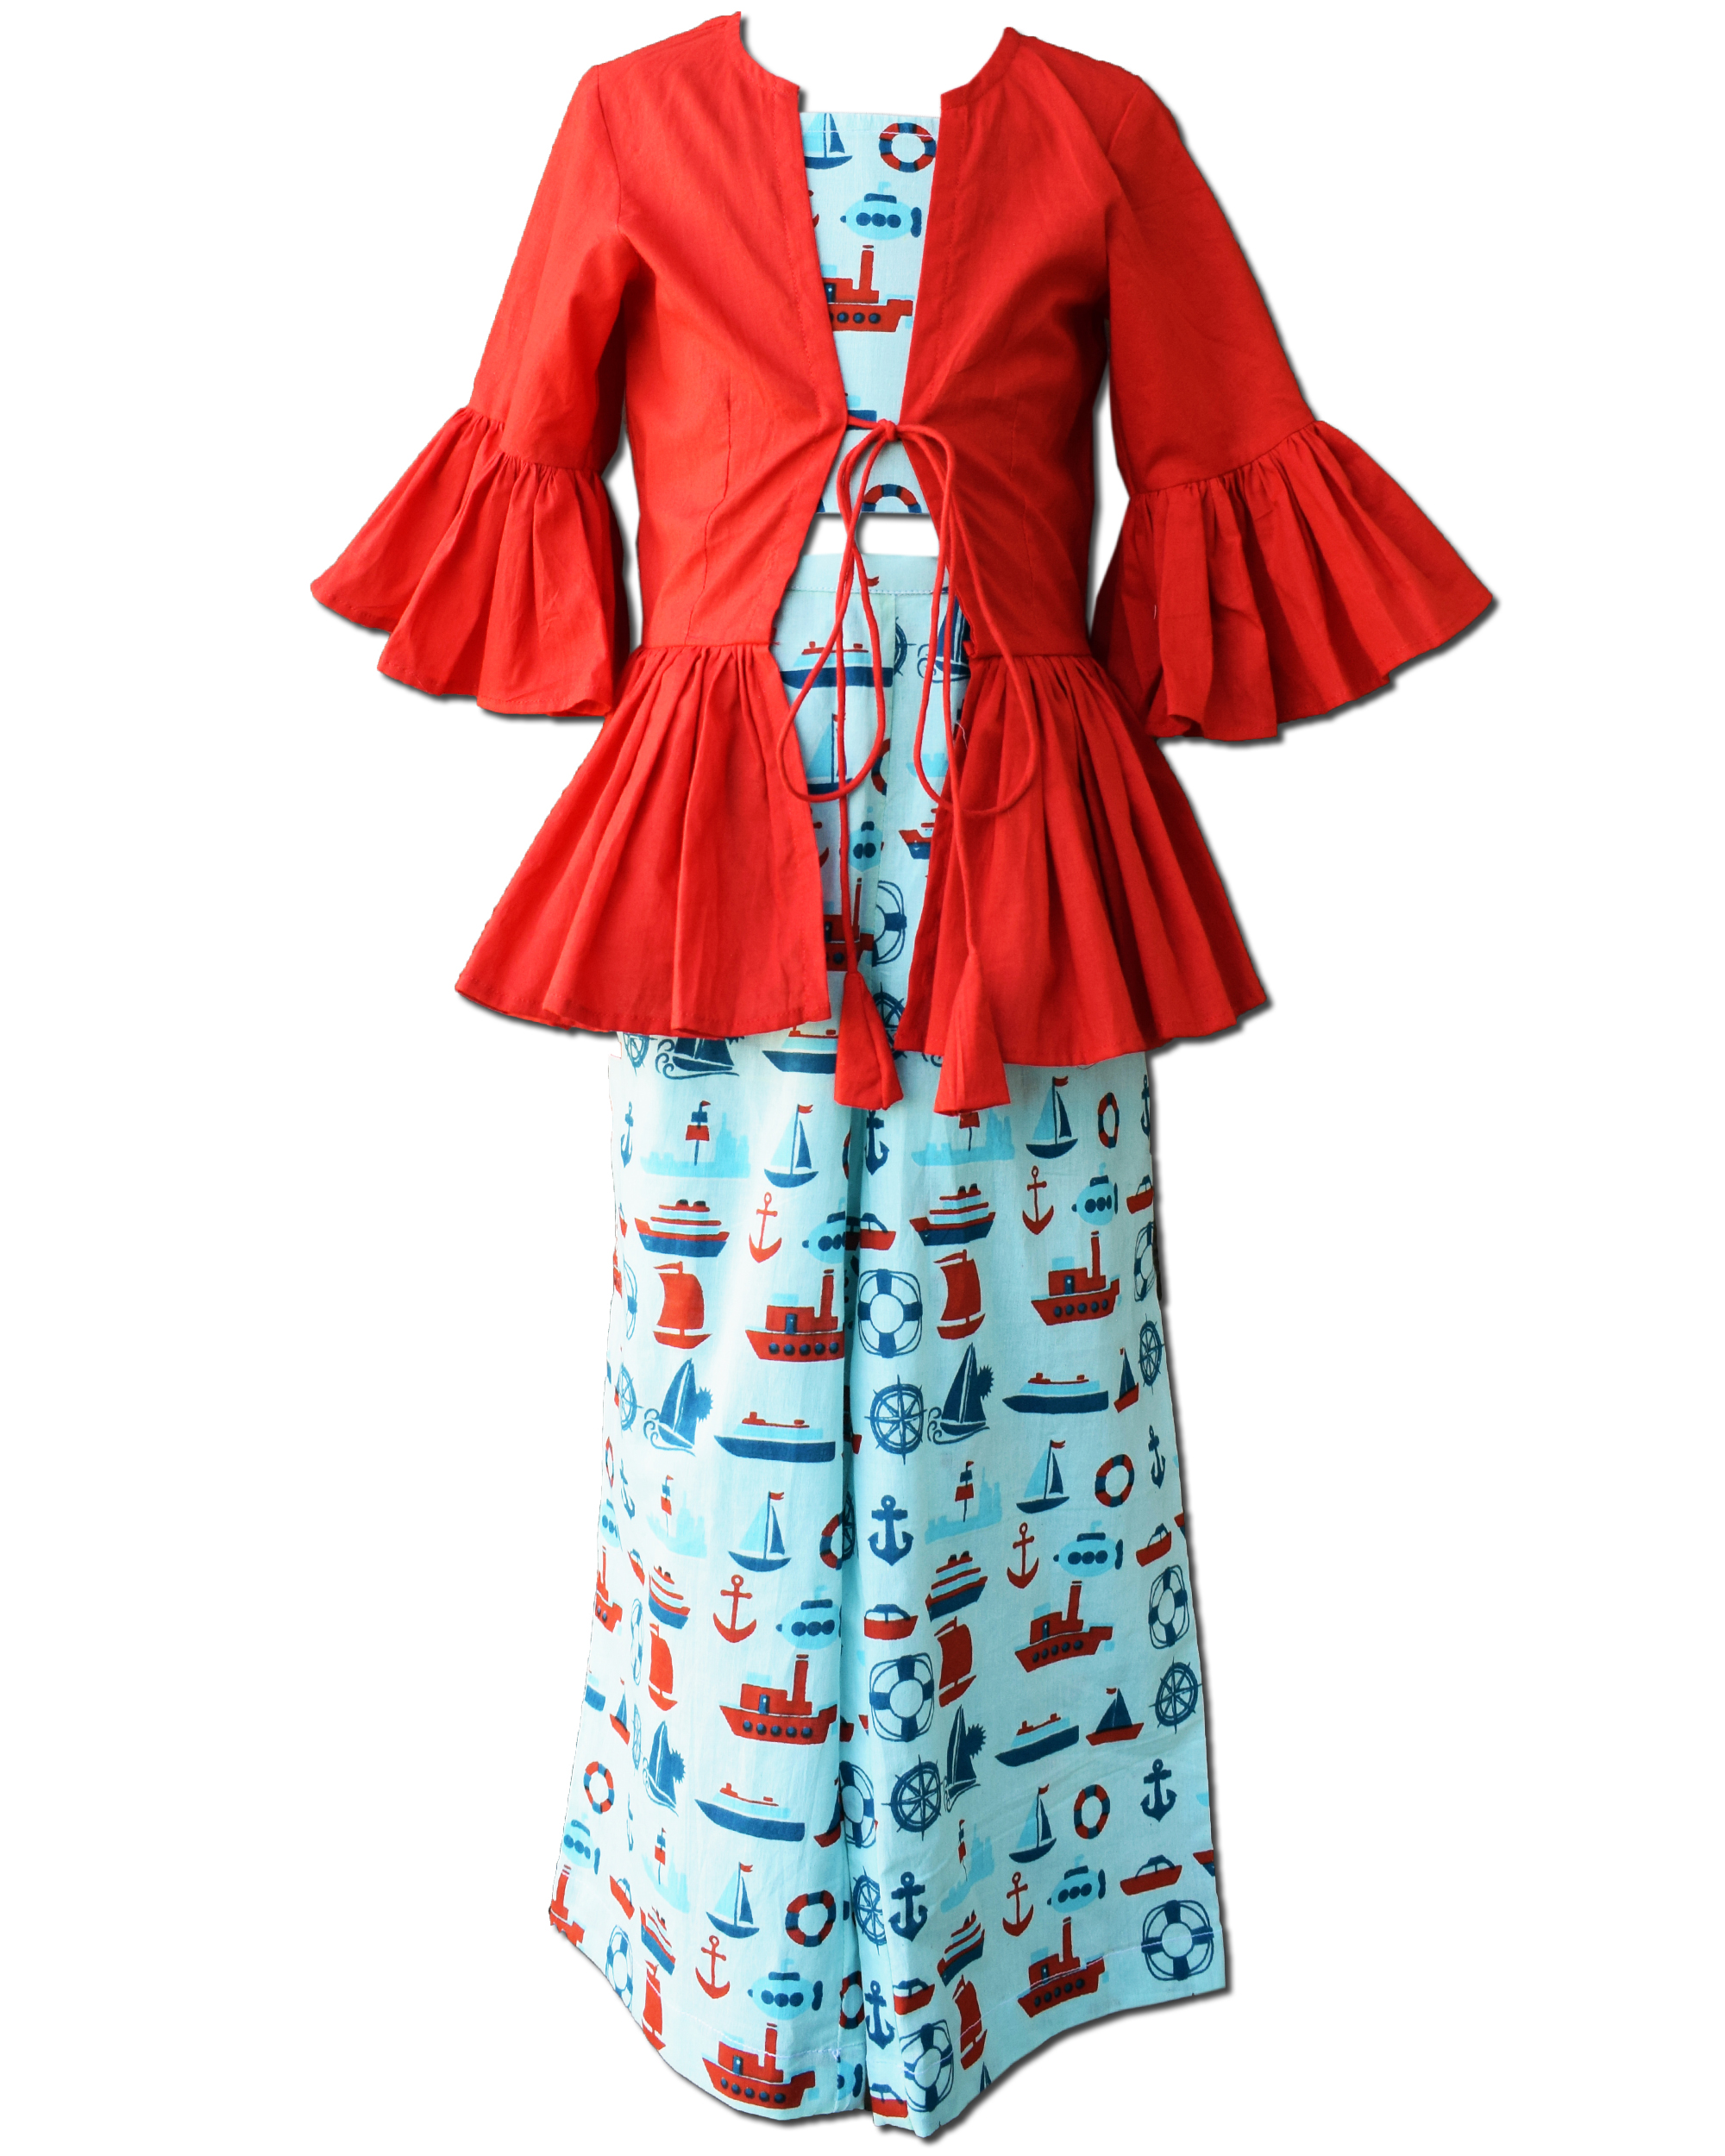 Light blue ship printed crop top and skirt with red ruffled shrug - Set Of Three